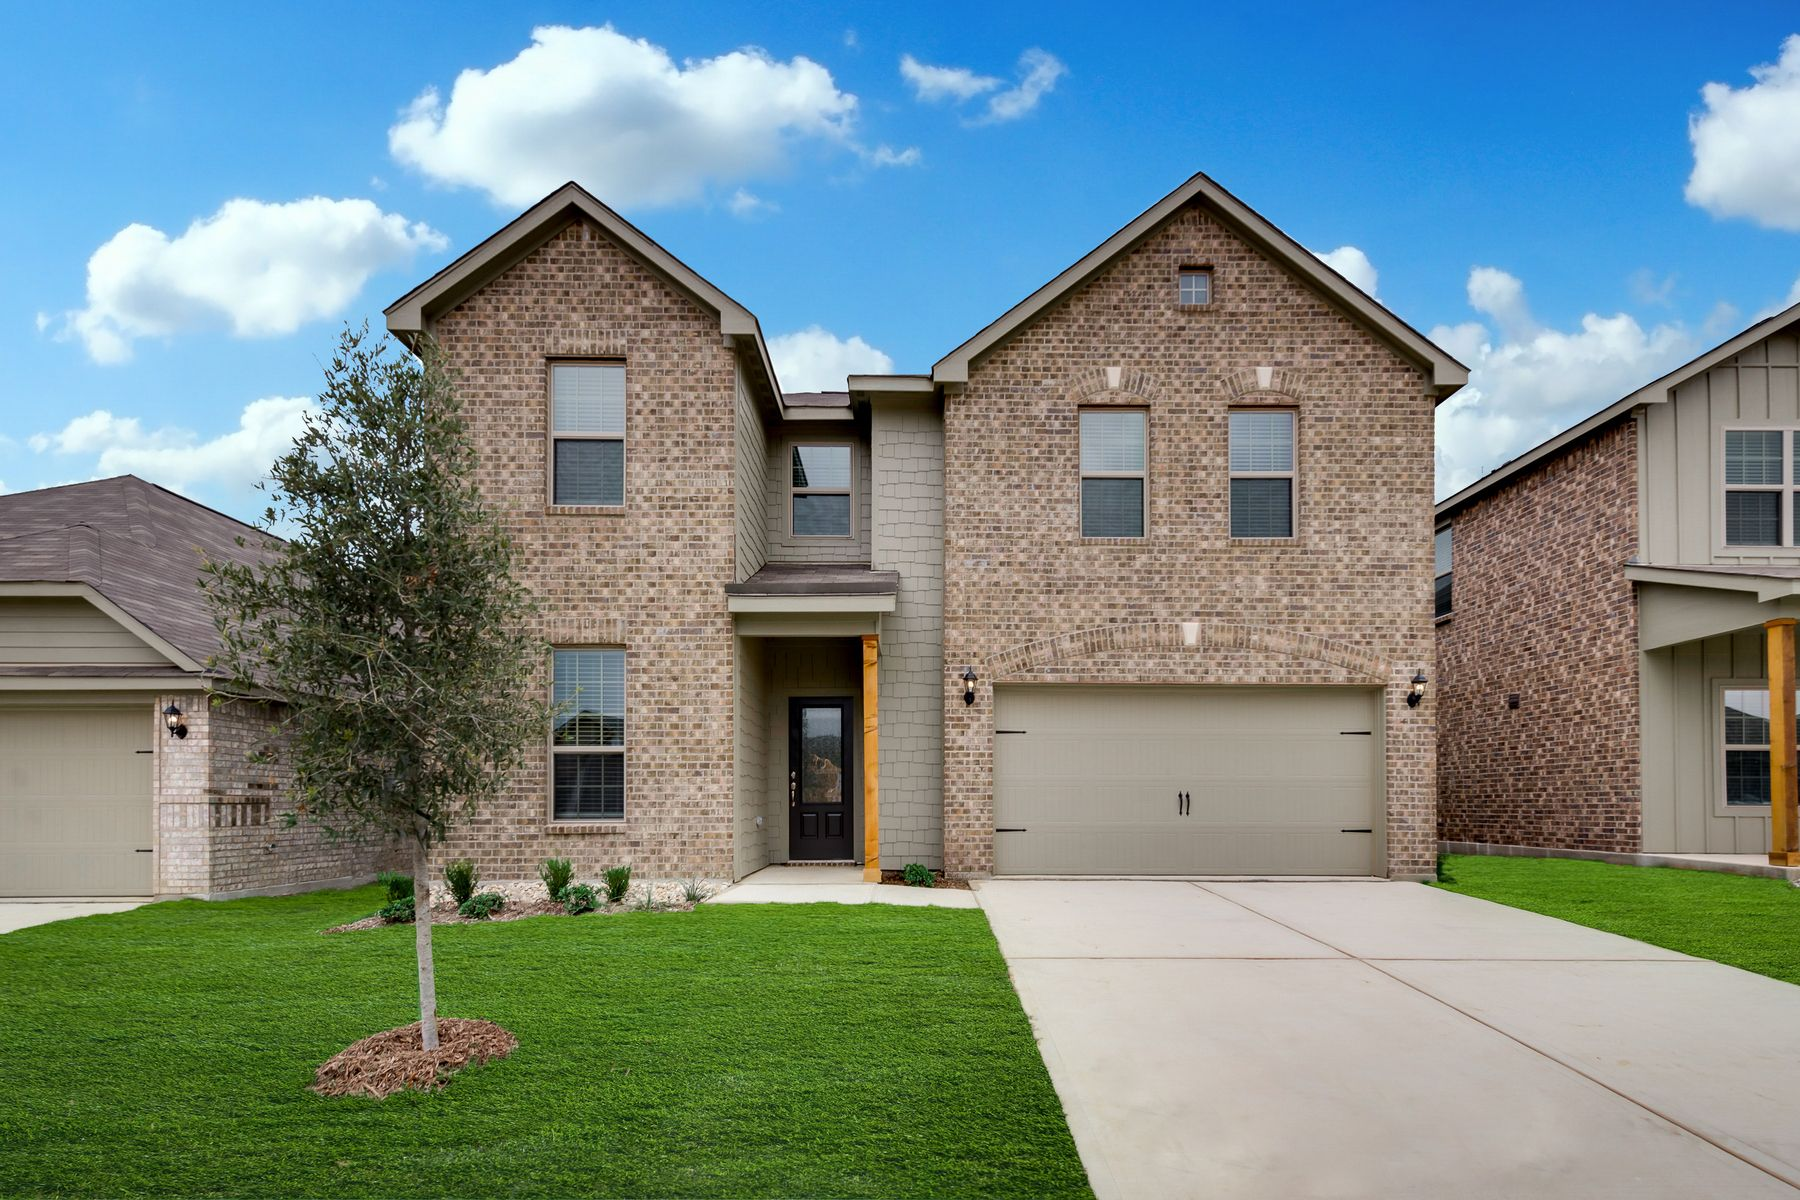 LGI Homes at Oak Ridge:The spacious Ozark plan at Oak Ridge.